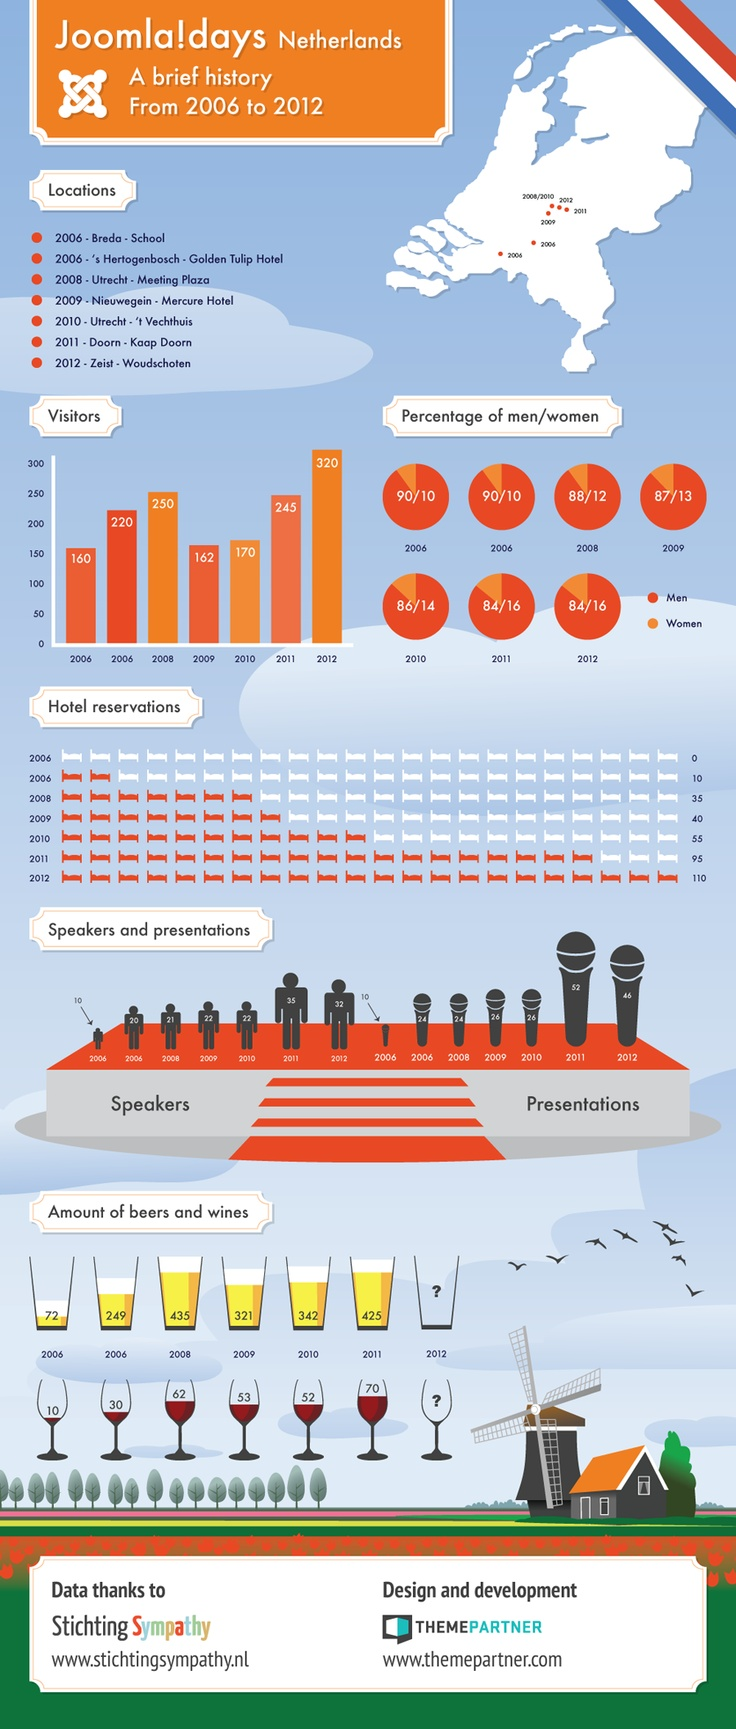 Joomla!Days Netherlands - a Brief History [Infographic] - Enjoy and feel free to share it!